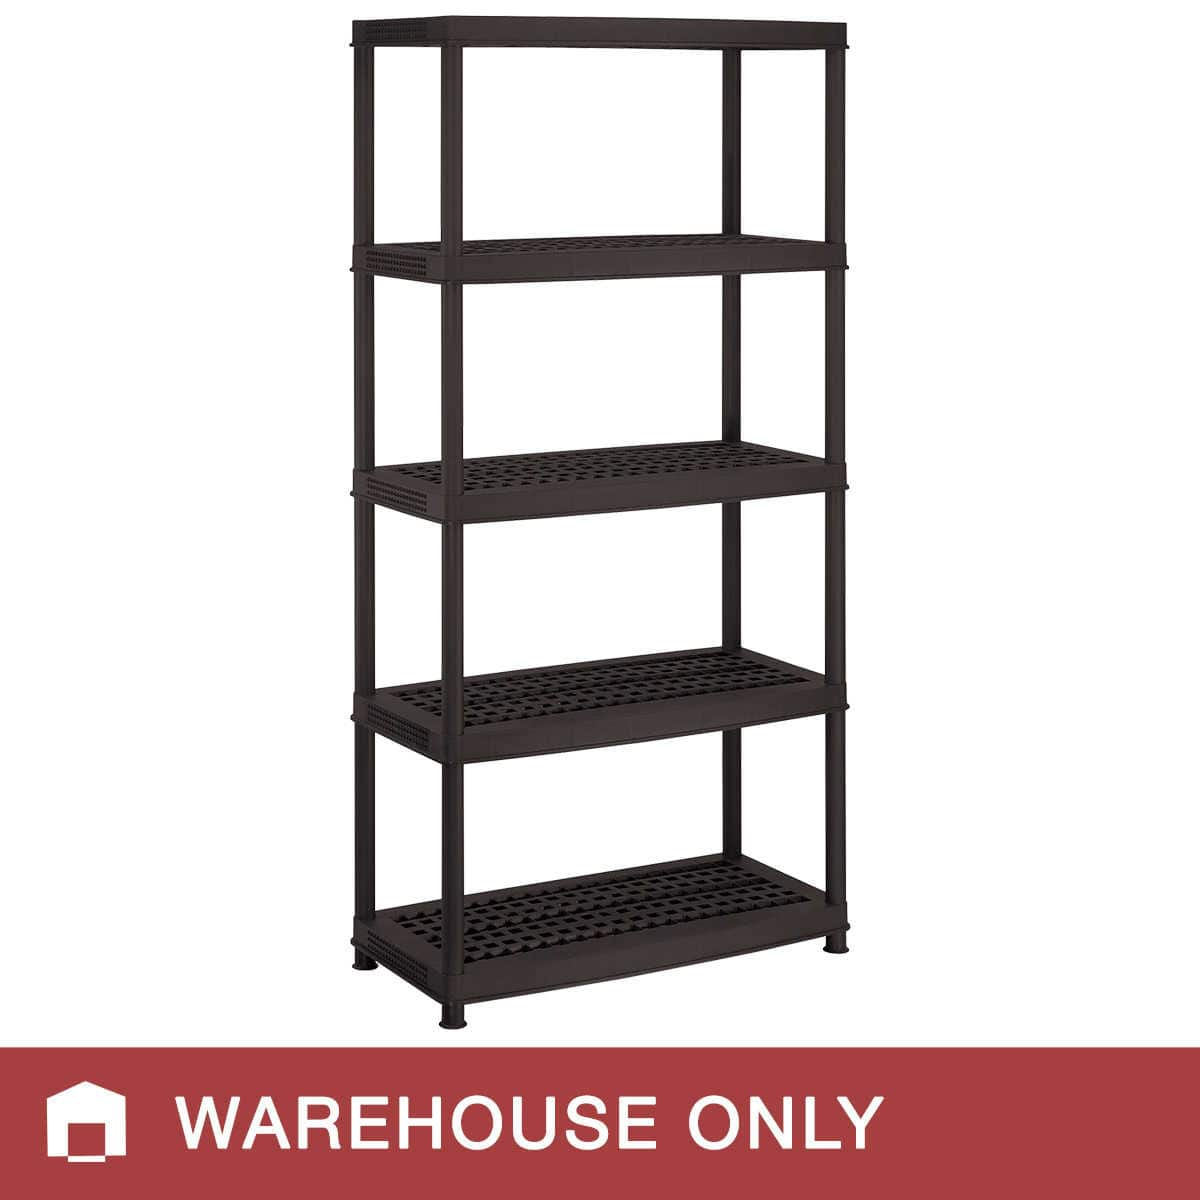 "Keter 5-Shelf Plastic Ventilated Storage Unit (Black, 72"" x 36"" x 18"") - In-store only $19.99"